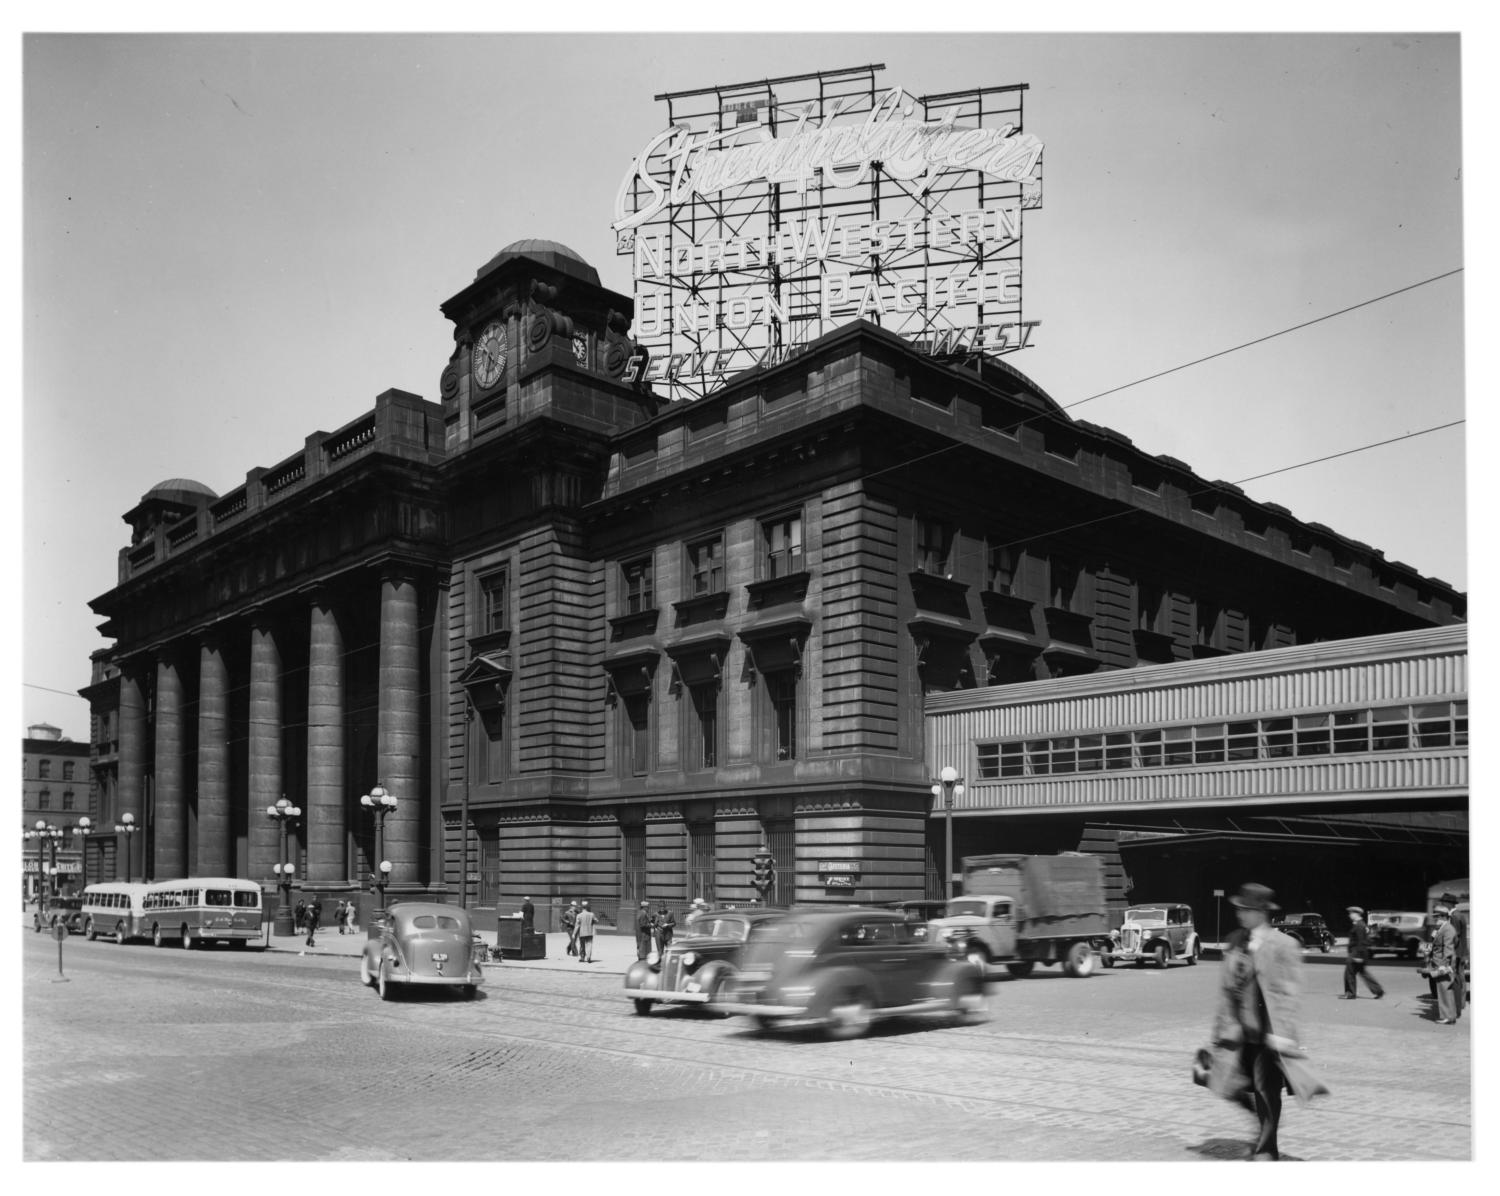 Chicago and North Western Railway's passenger station] - The